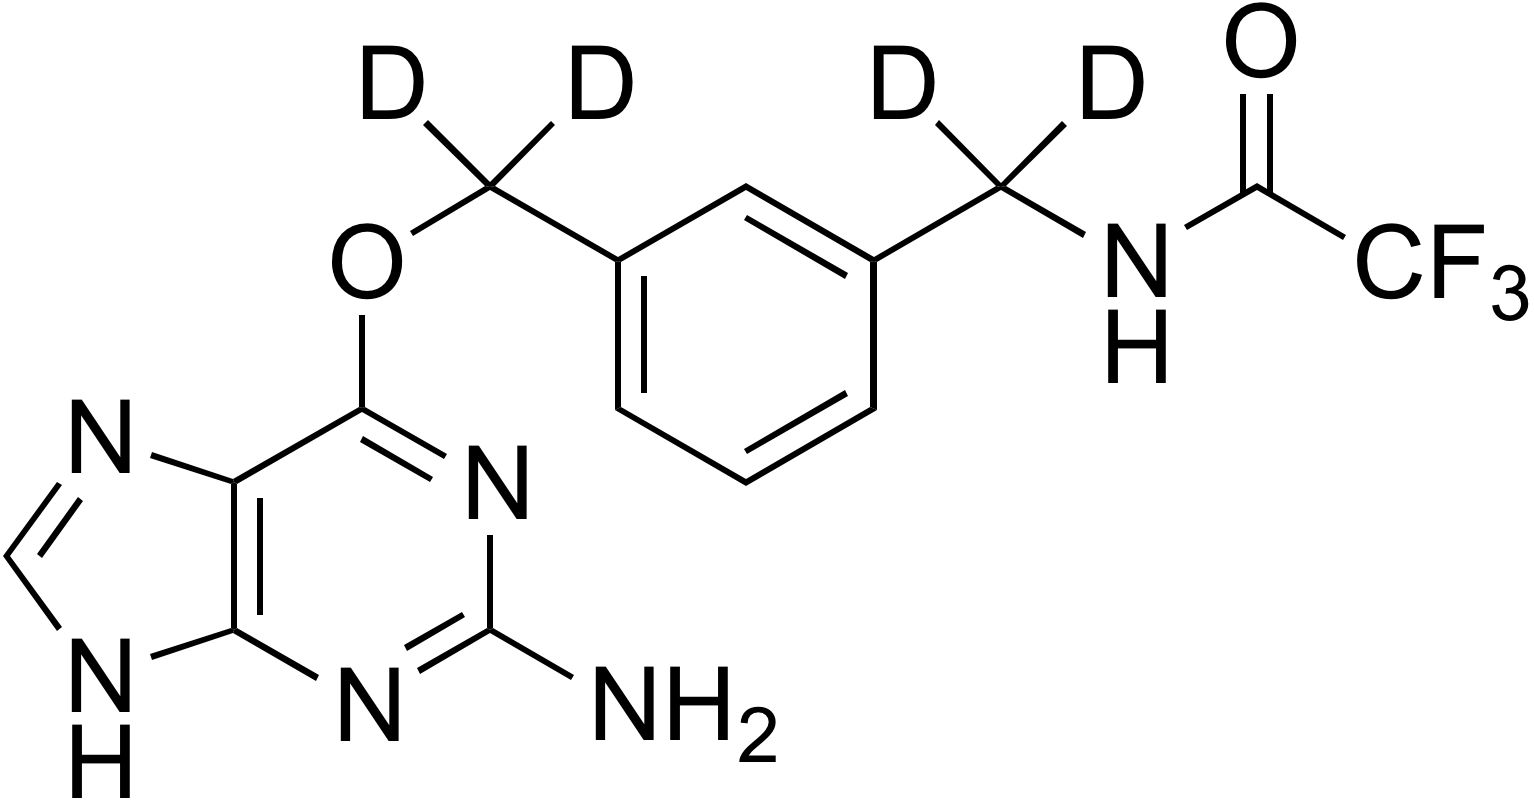 O6-[3-(Trifluoroacetamidomethyl-d<sub>2</sub>)benzyl-d<sub>2</sub>]guanine